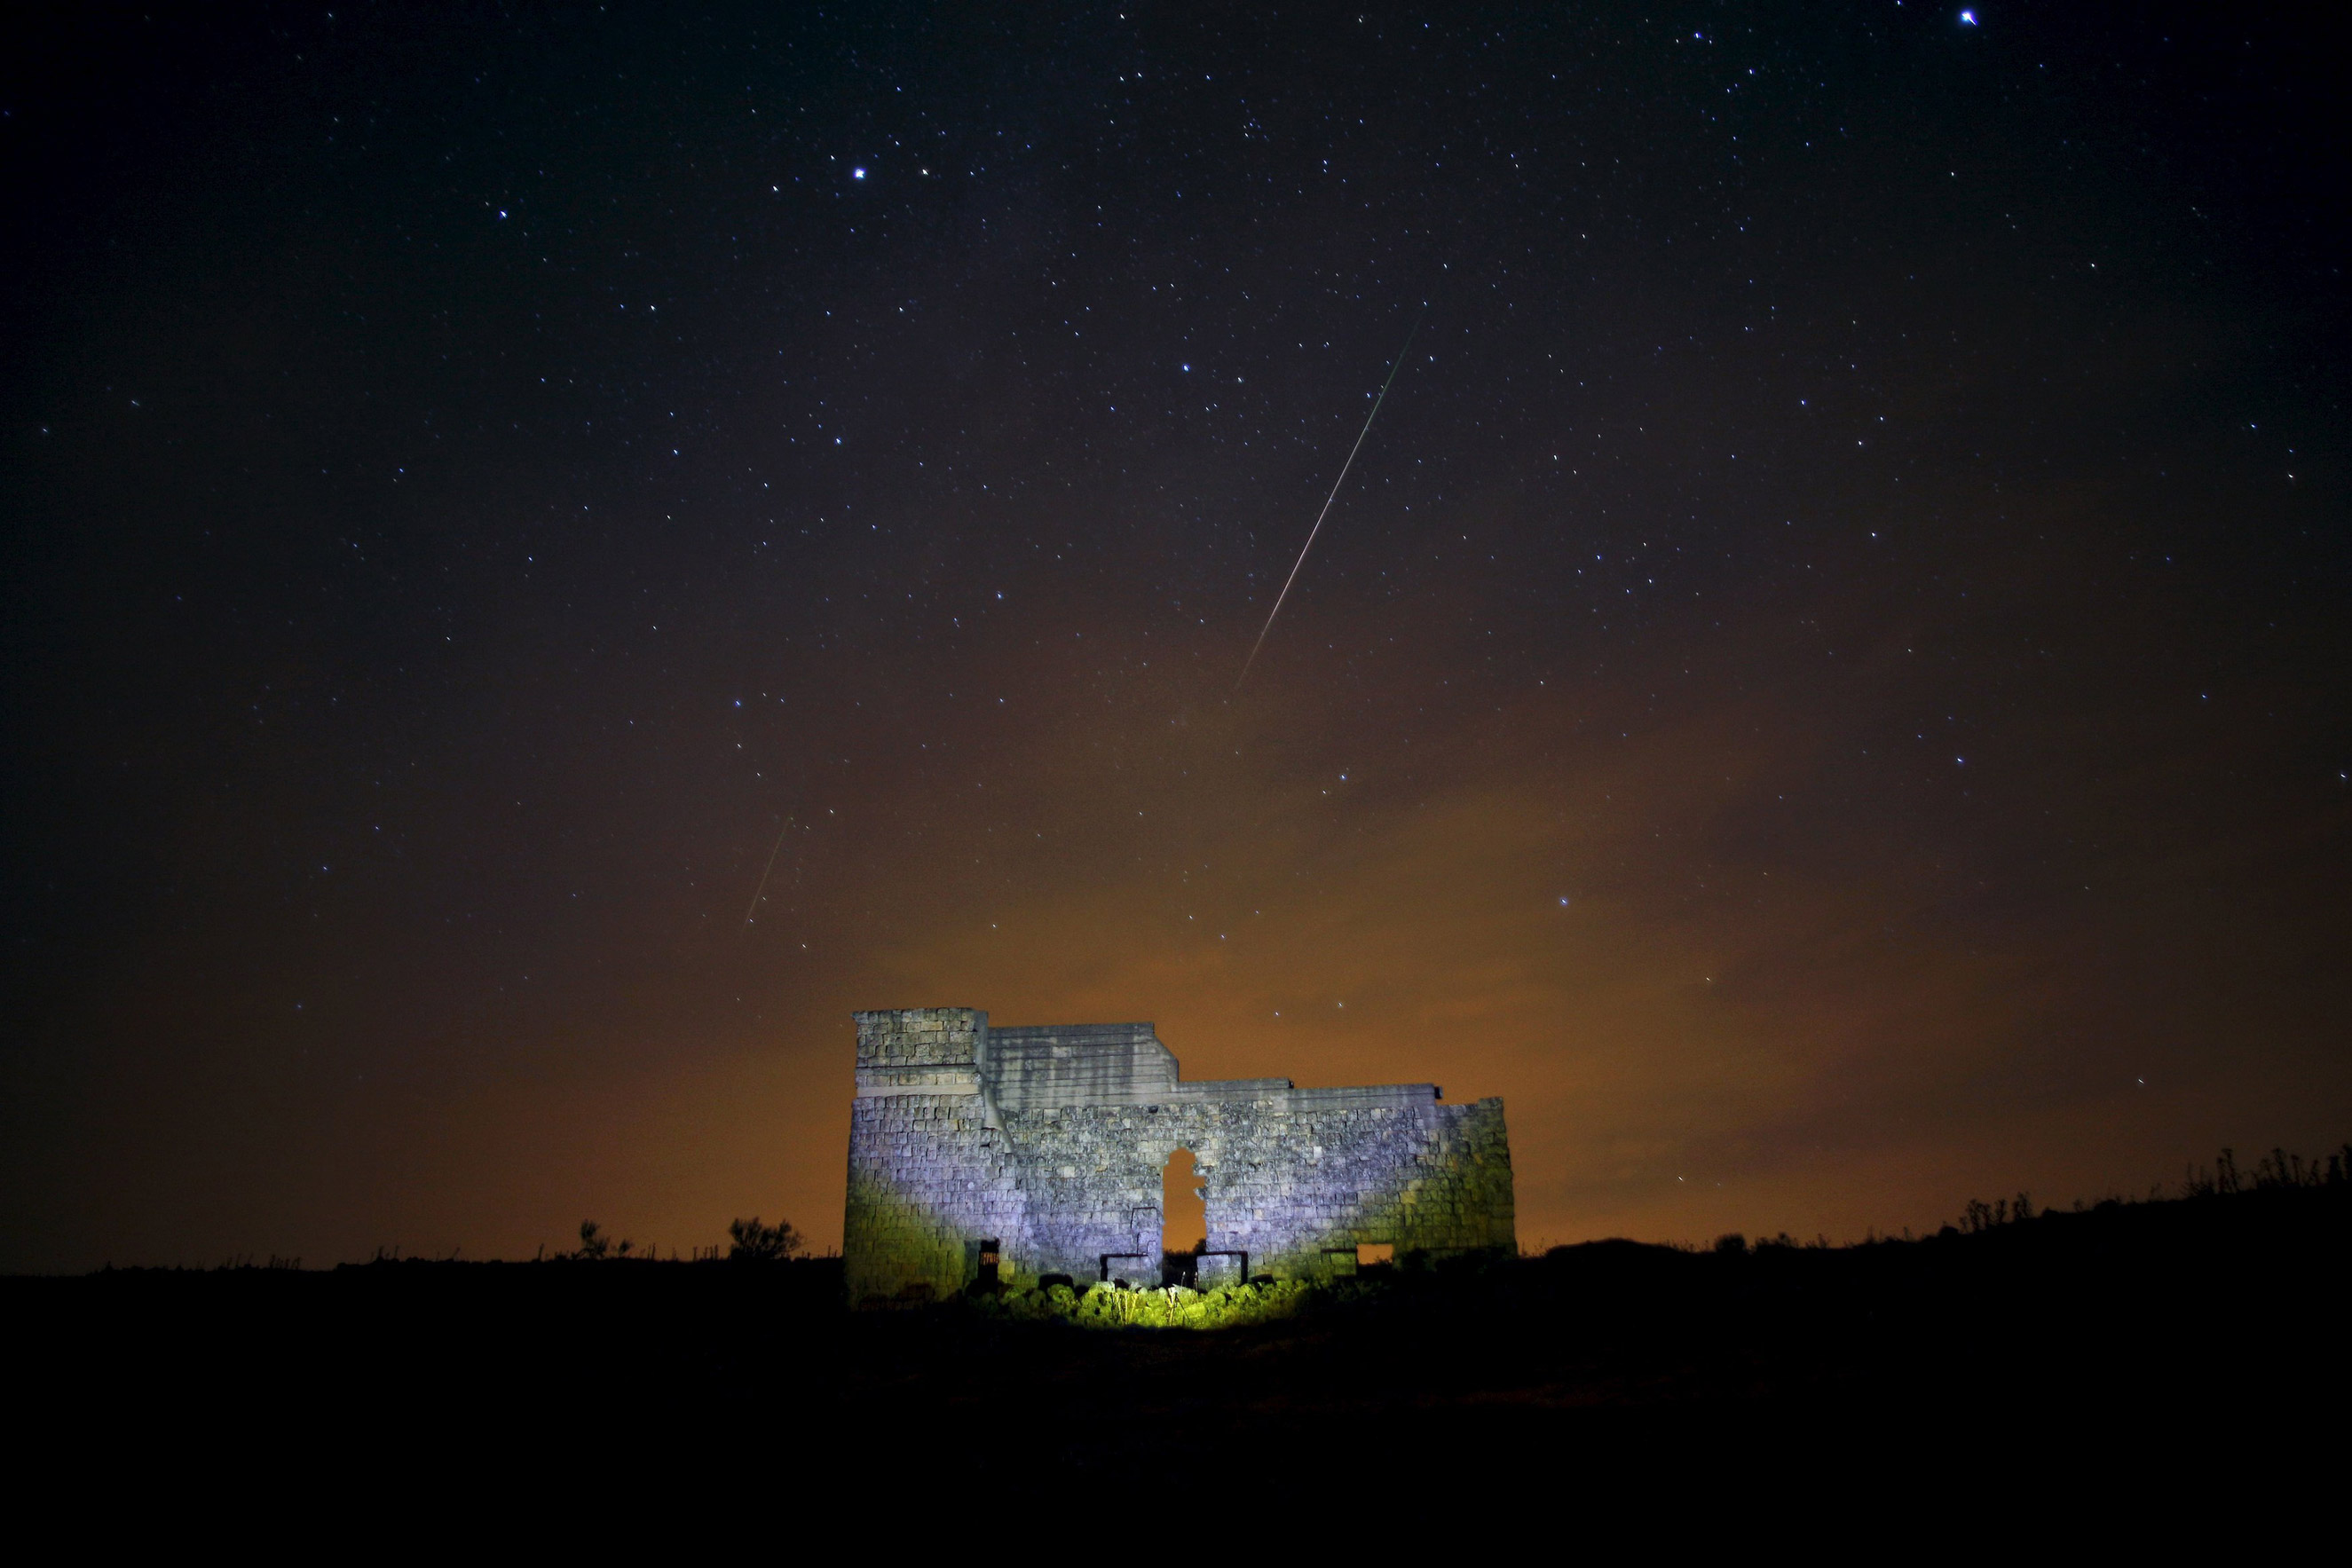 The Perseid meteor shower over a Roman theatre in the ruins of Acinipio near Seville, Spain on Aug. 13, 2015